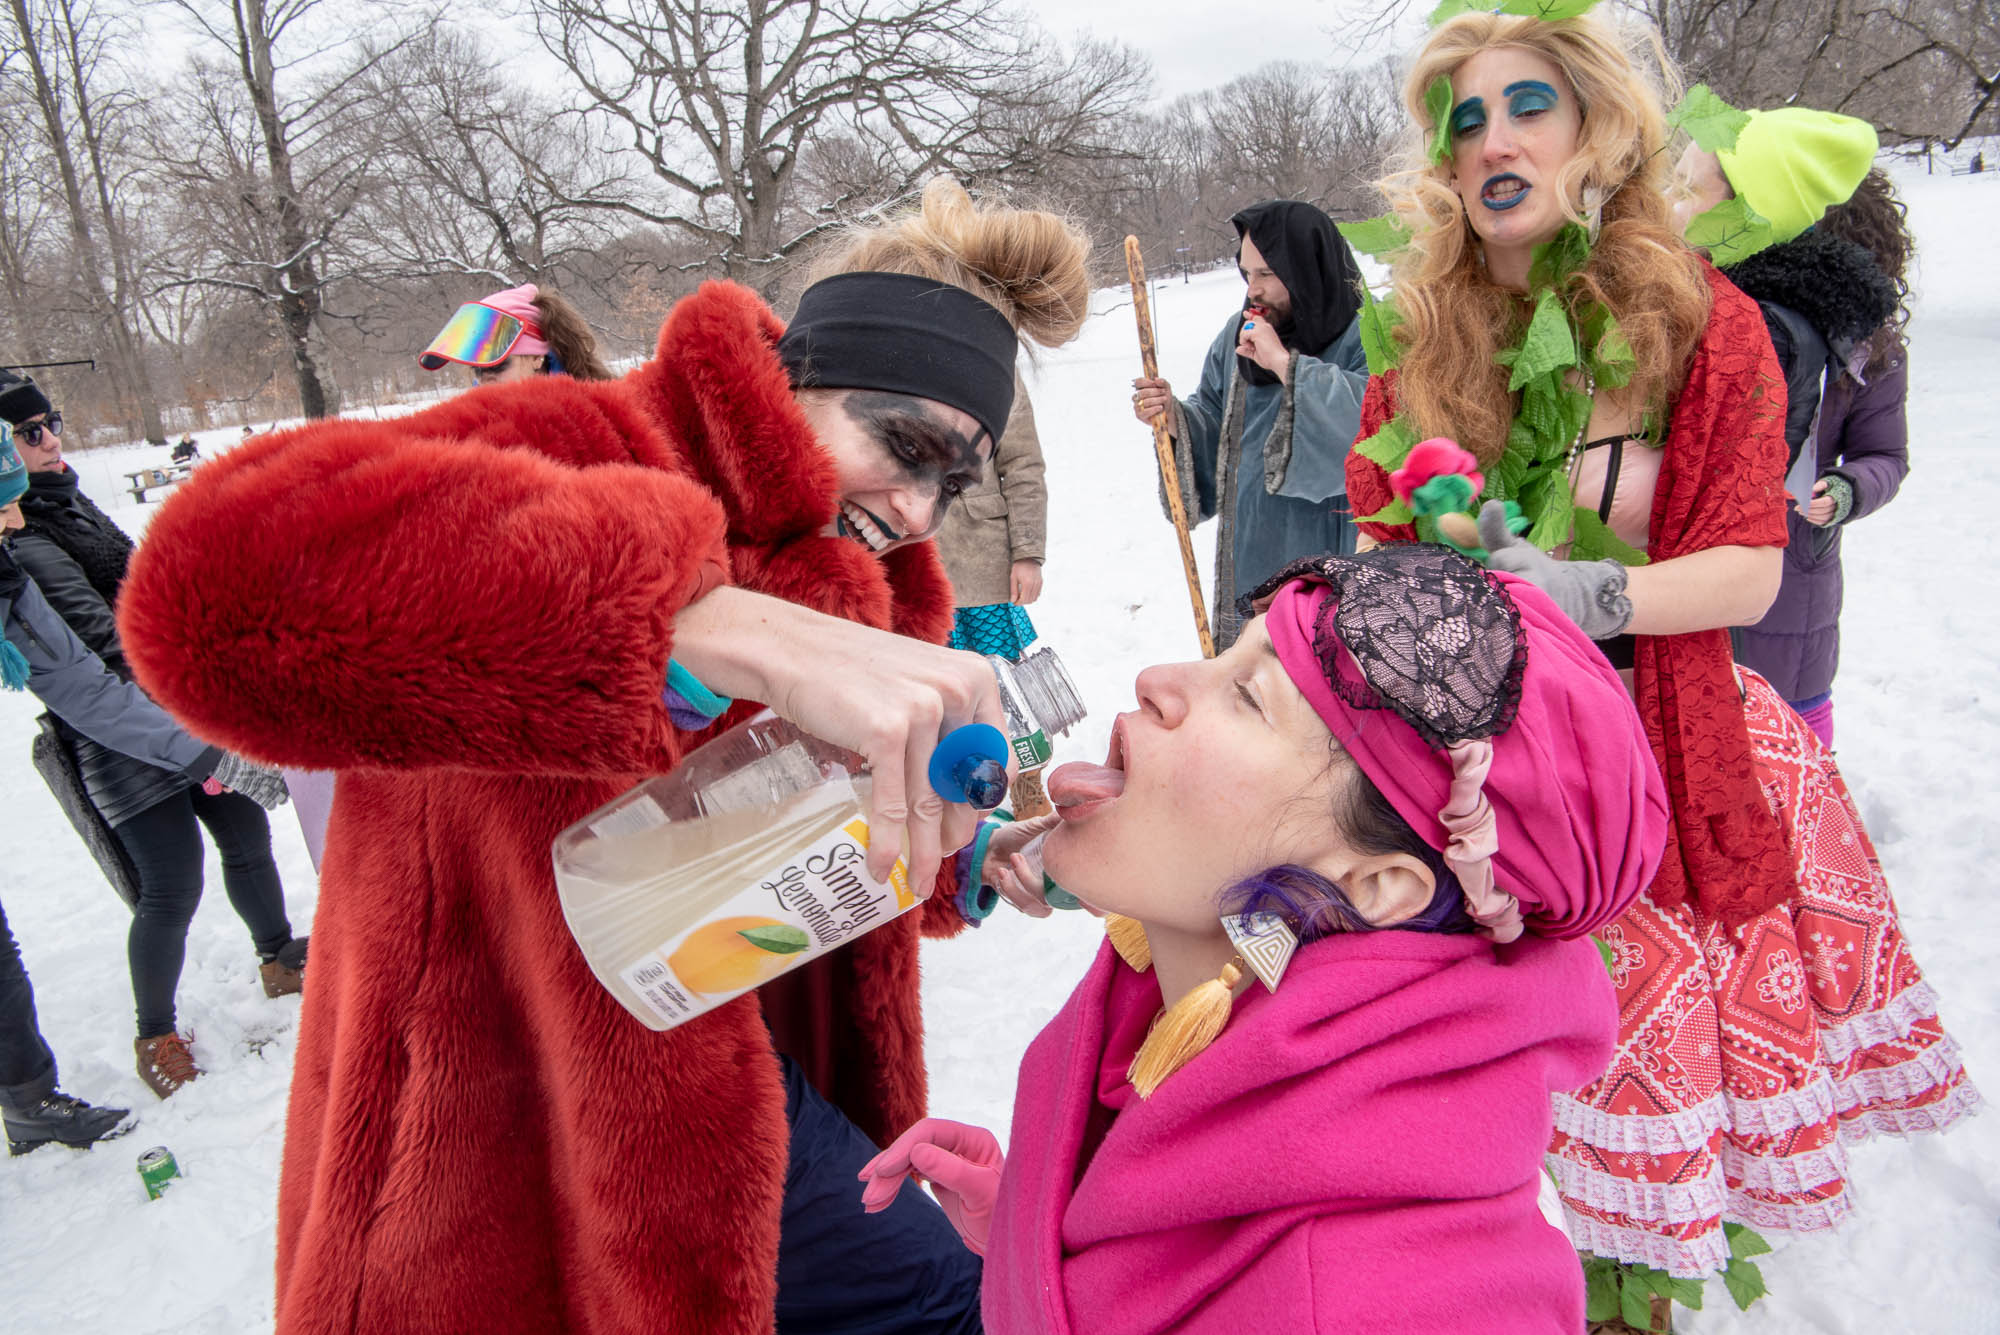 Members of Cthululemon drink during Competitive Winter Picnicking in Prospect Park on Saturday, March 2, 2019.